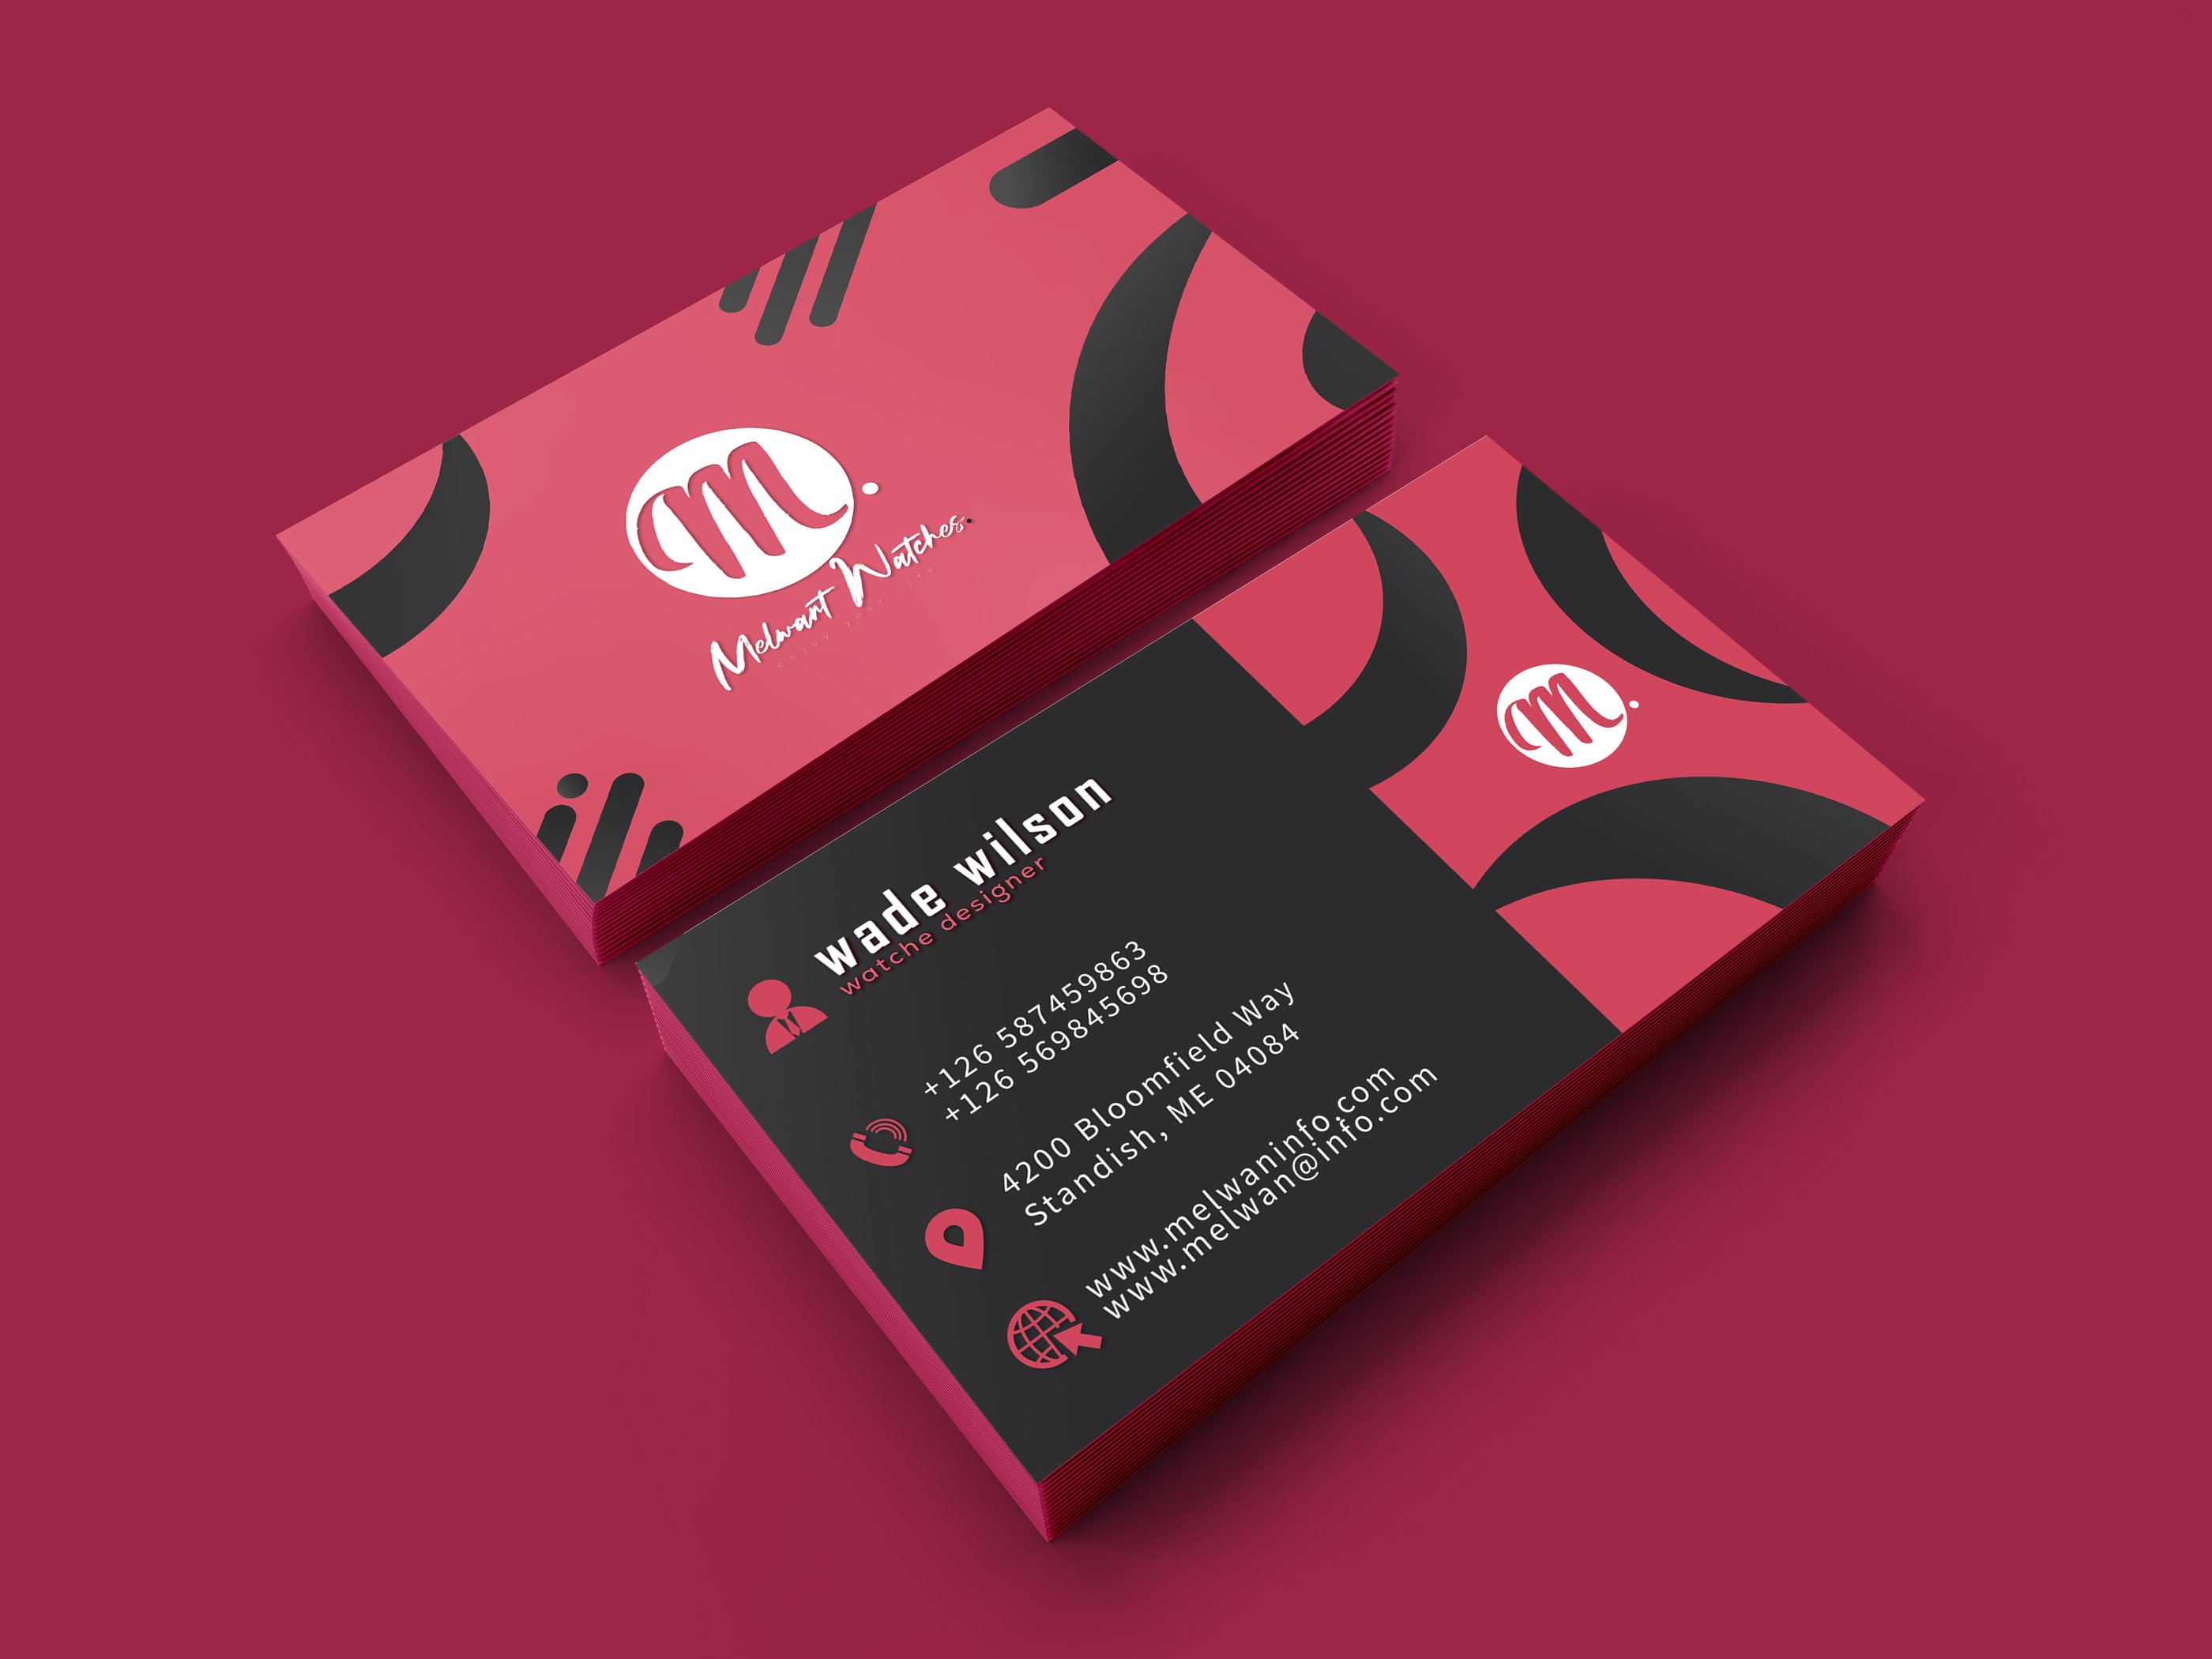 I will make a creative business card design